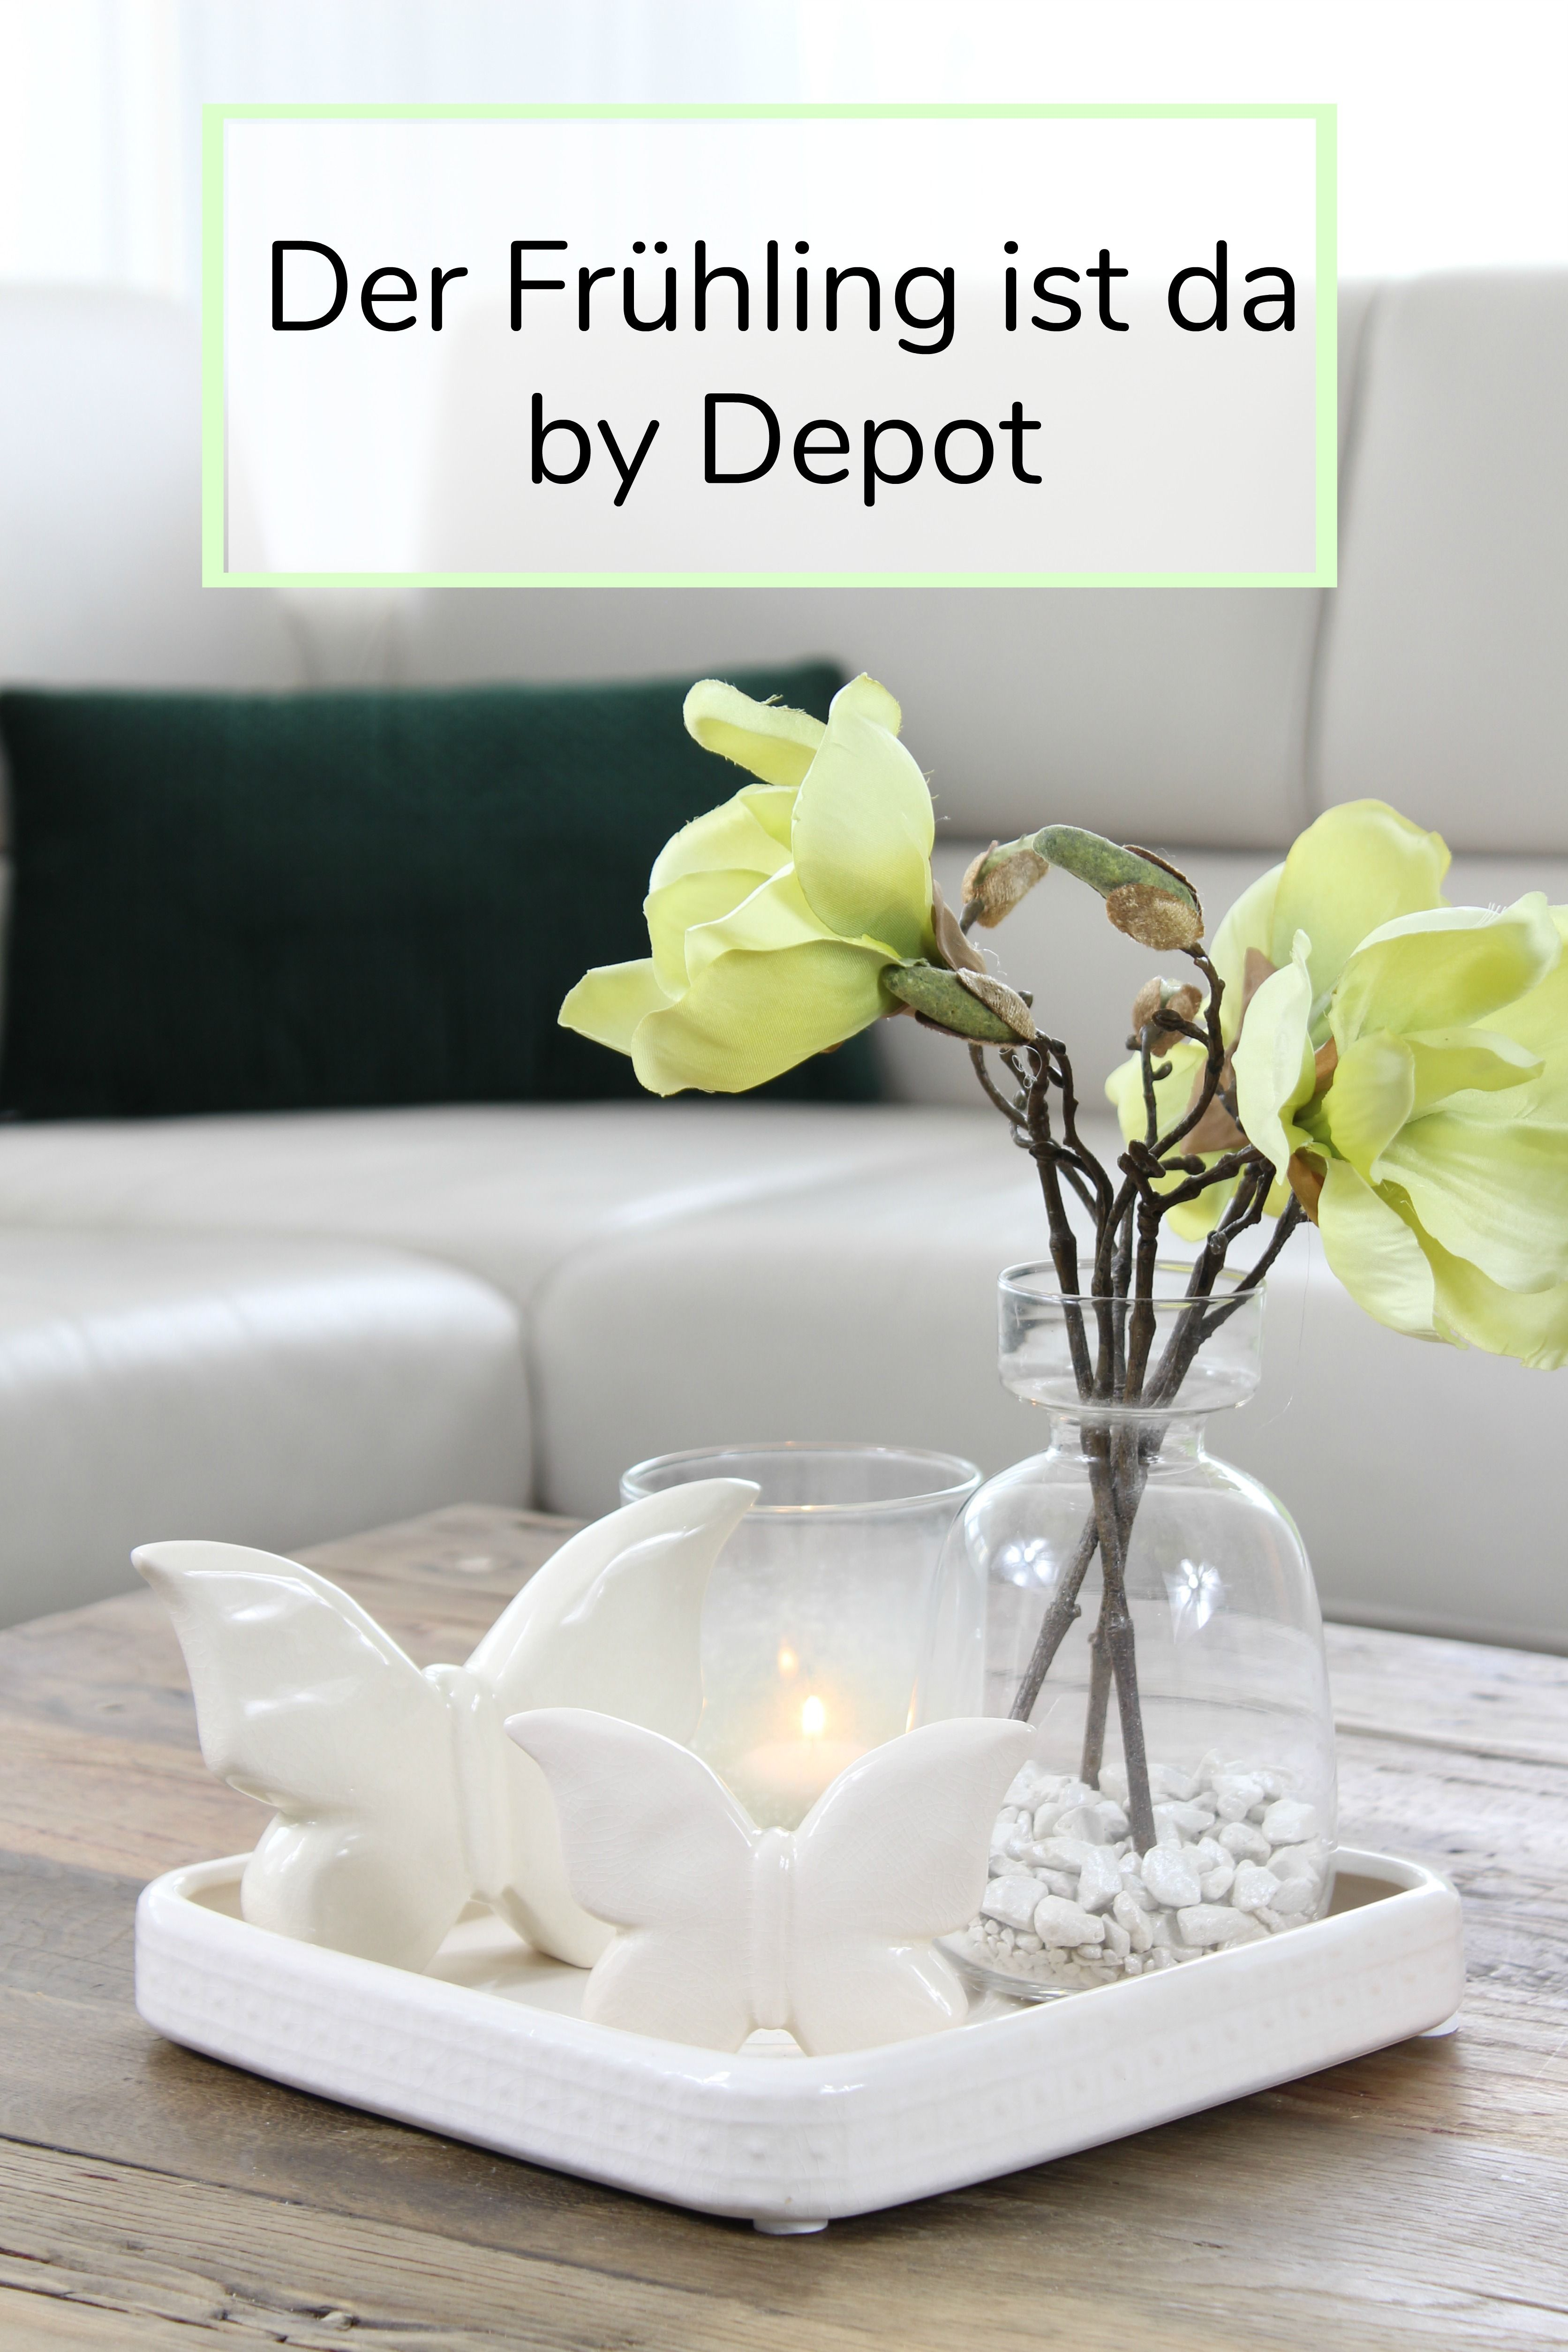 Photo of Spring is here by Depot